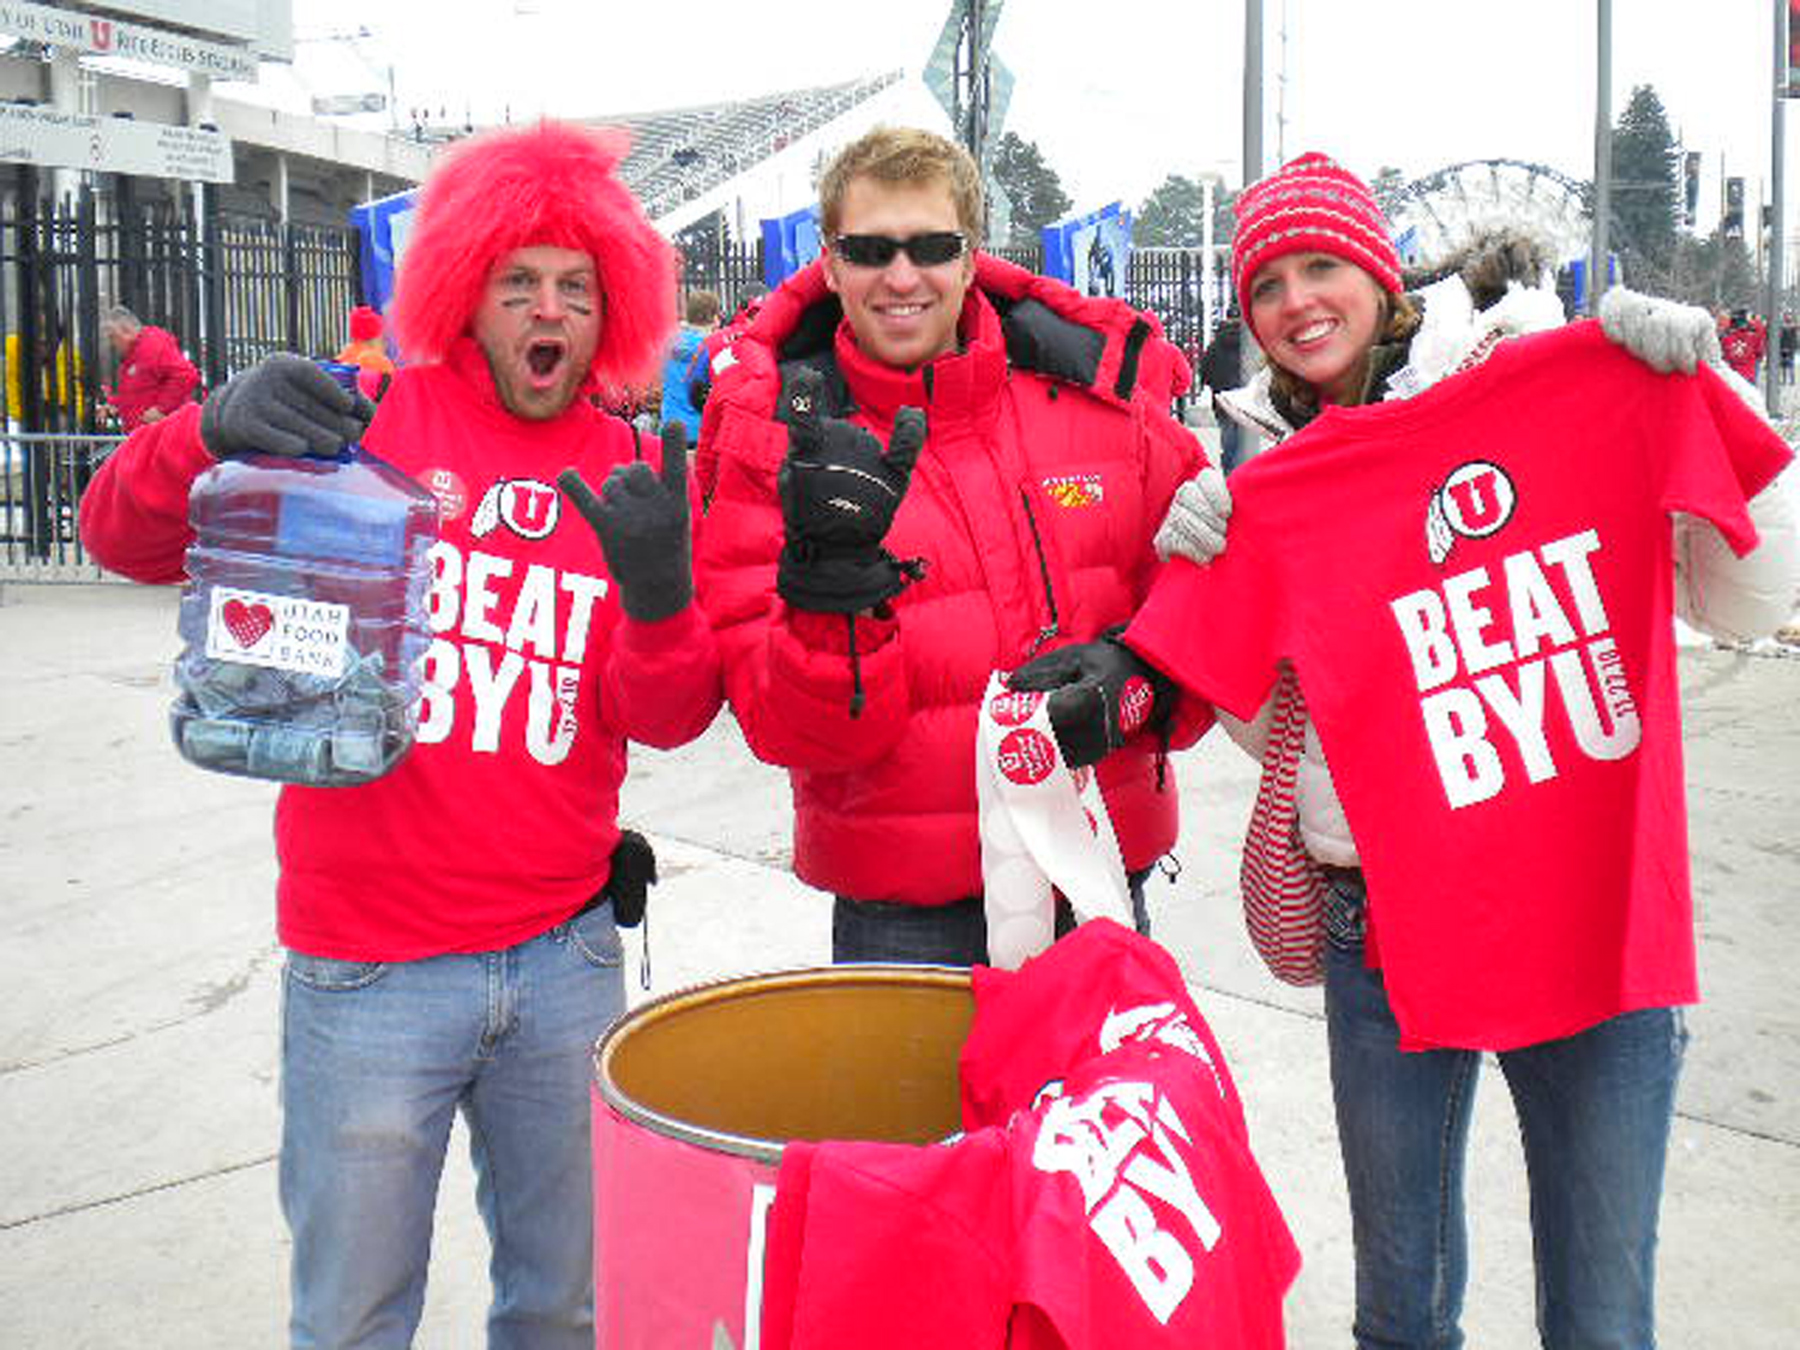 John van Tassell, Cameron King, Suzanne Schmidt King – members of the University of Utah Student Alumni Board – outside Rice-Eccles Stadium during the 2010 Utah vs. BYU food drive. This year's drive runs Nov. 12-25. Cash donations and nonperishable food items will be collected at various locations on the U campus and throughout Salt Lake City to support the Utah Food Bank. Results of the Utah vs. BYU food drive will be released in December.